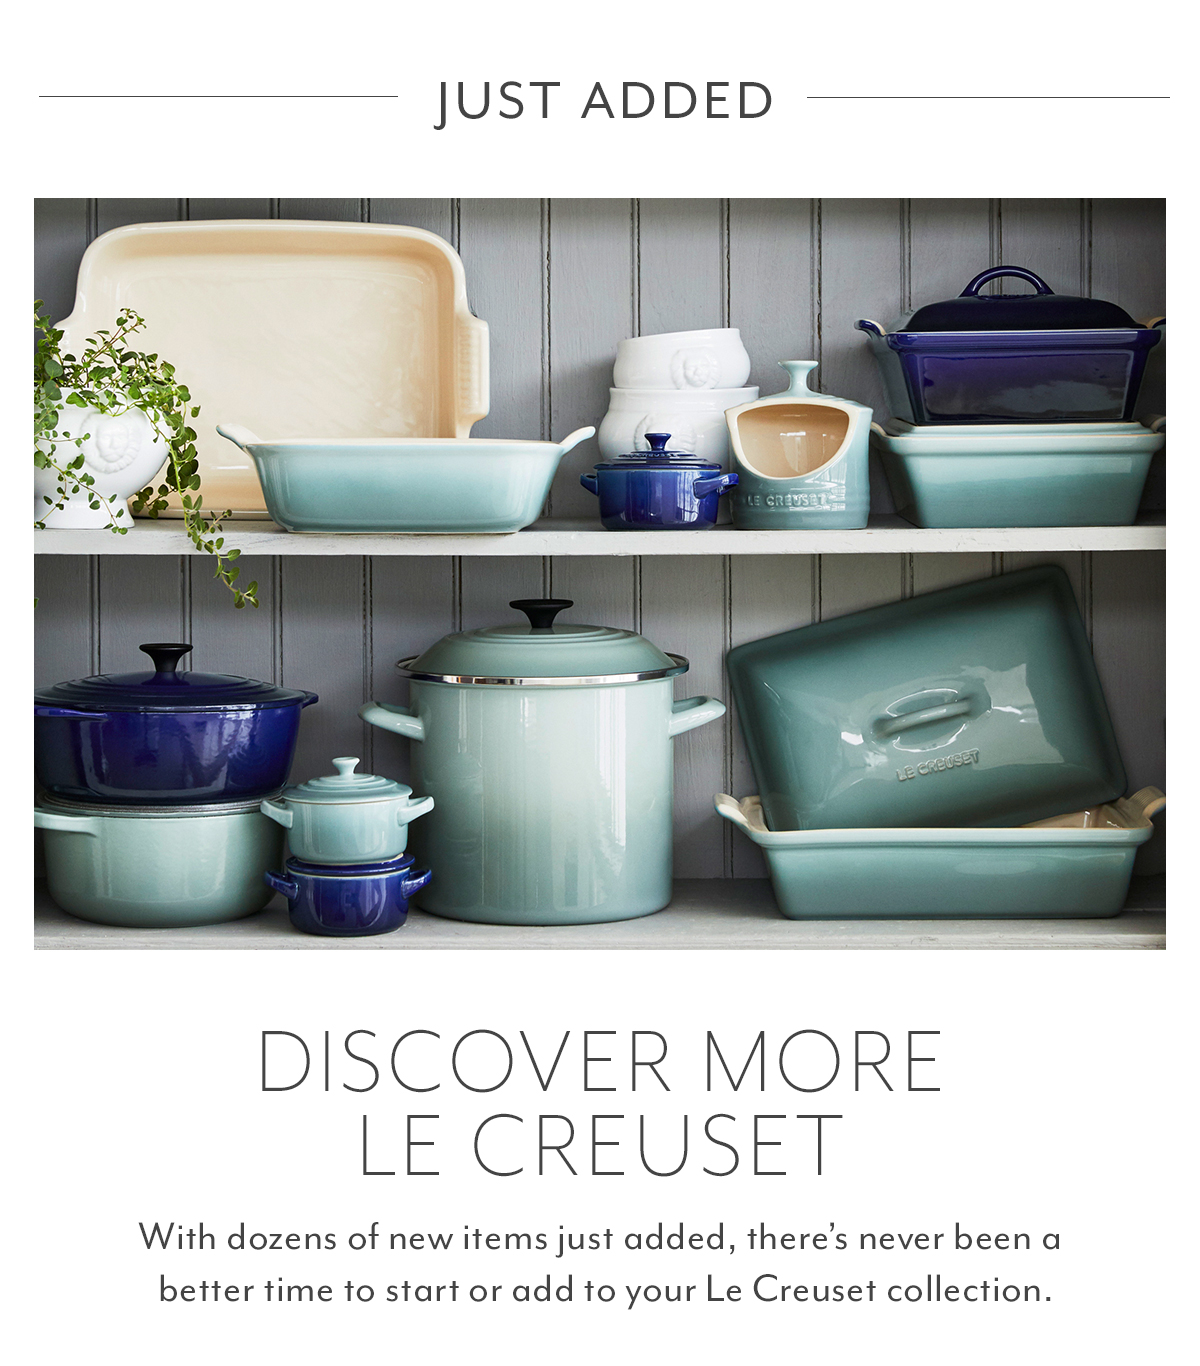 Discover More Le Creuset